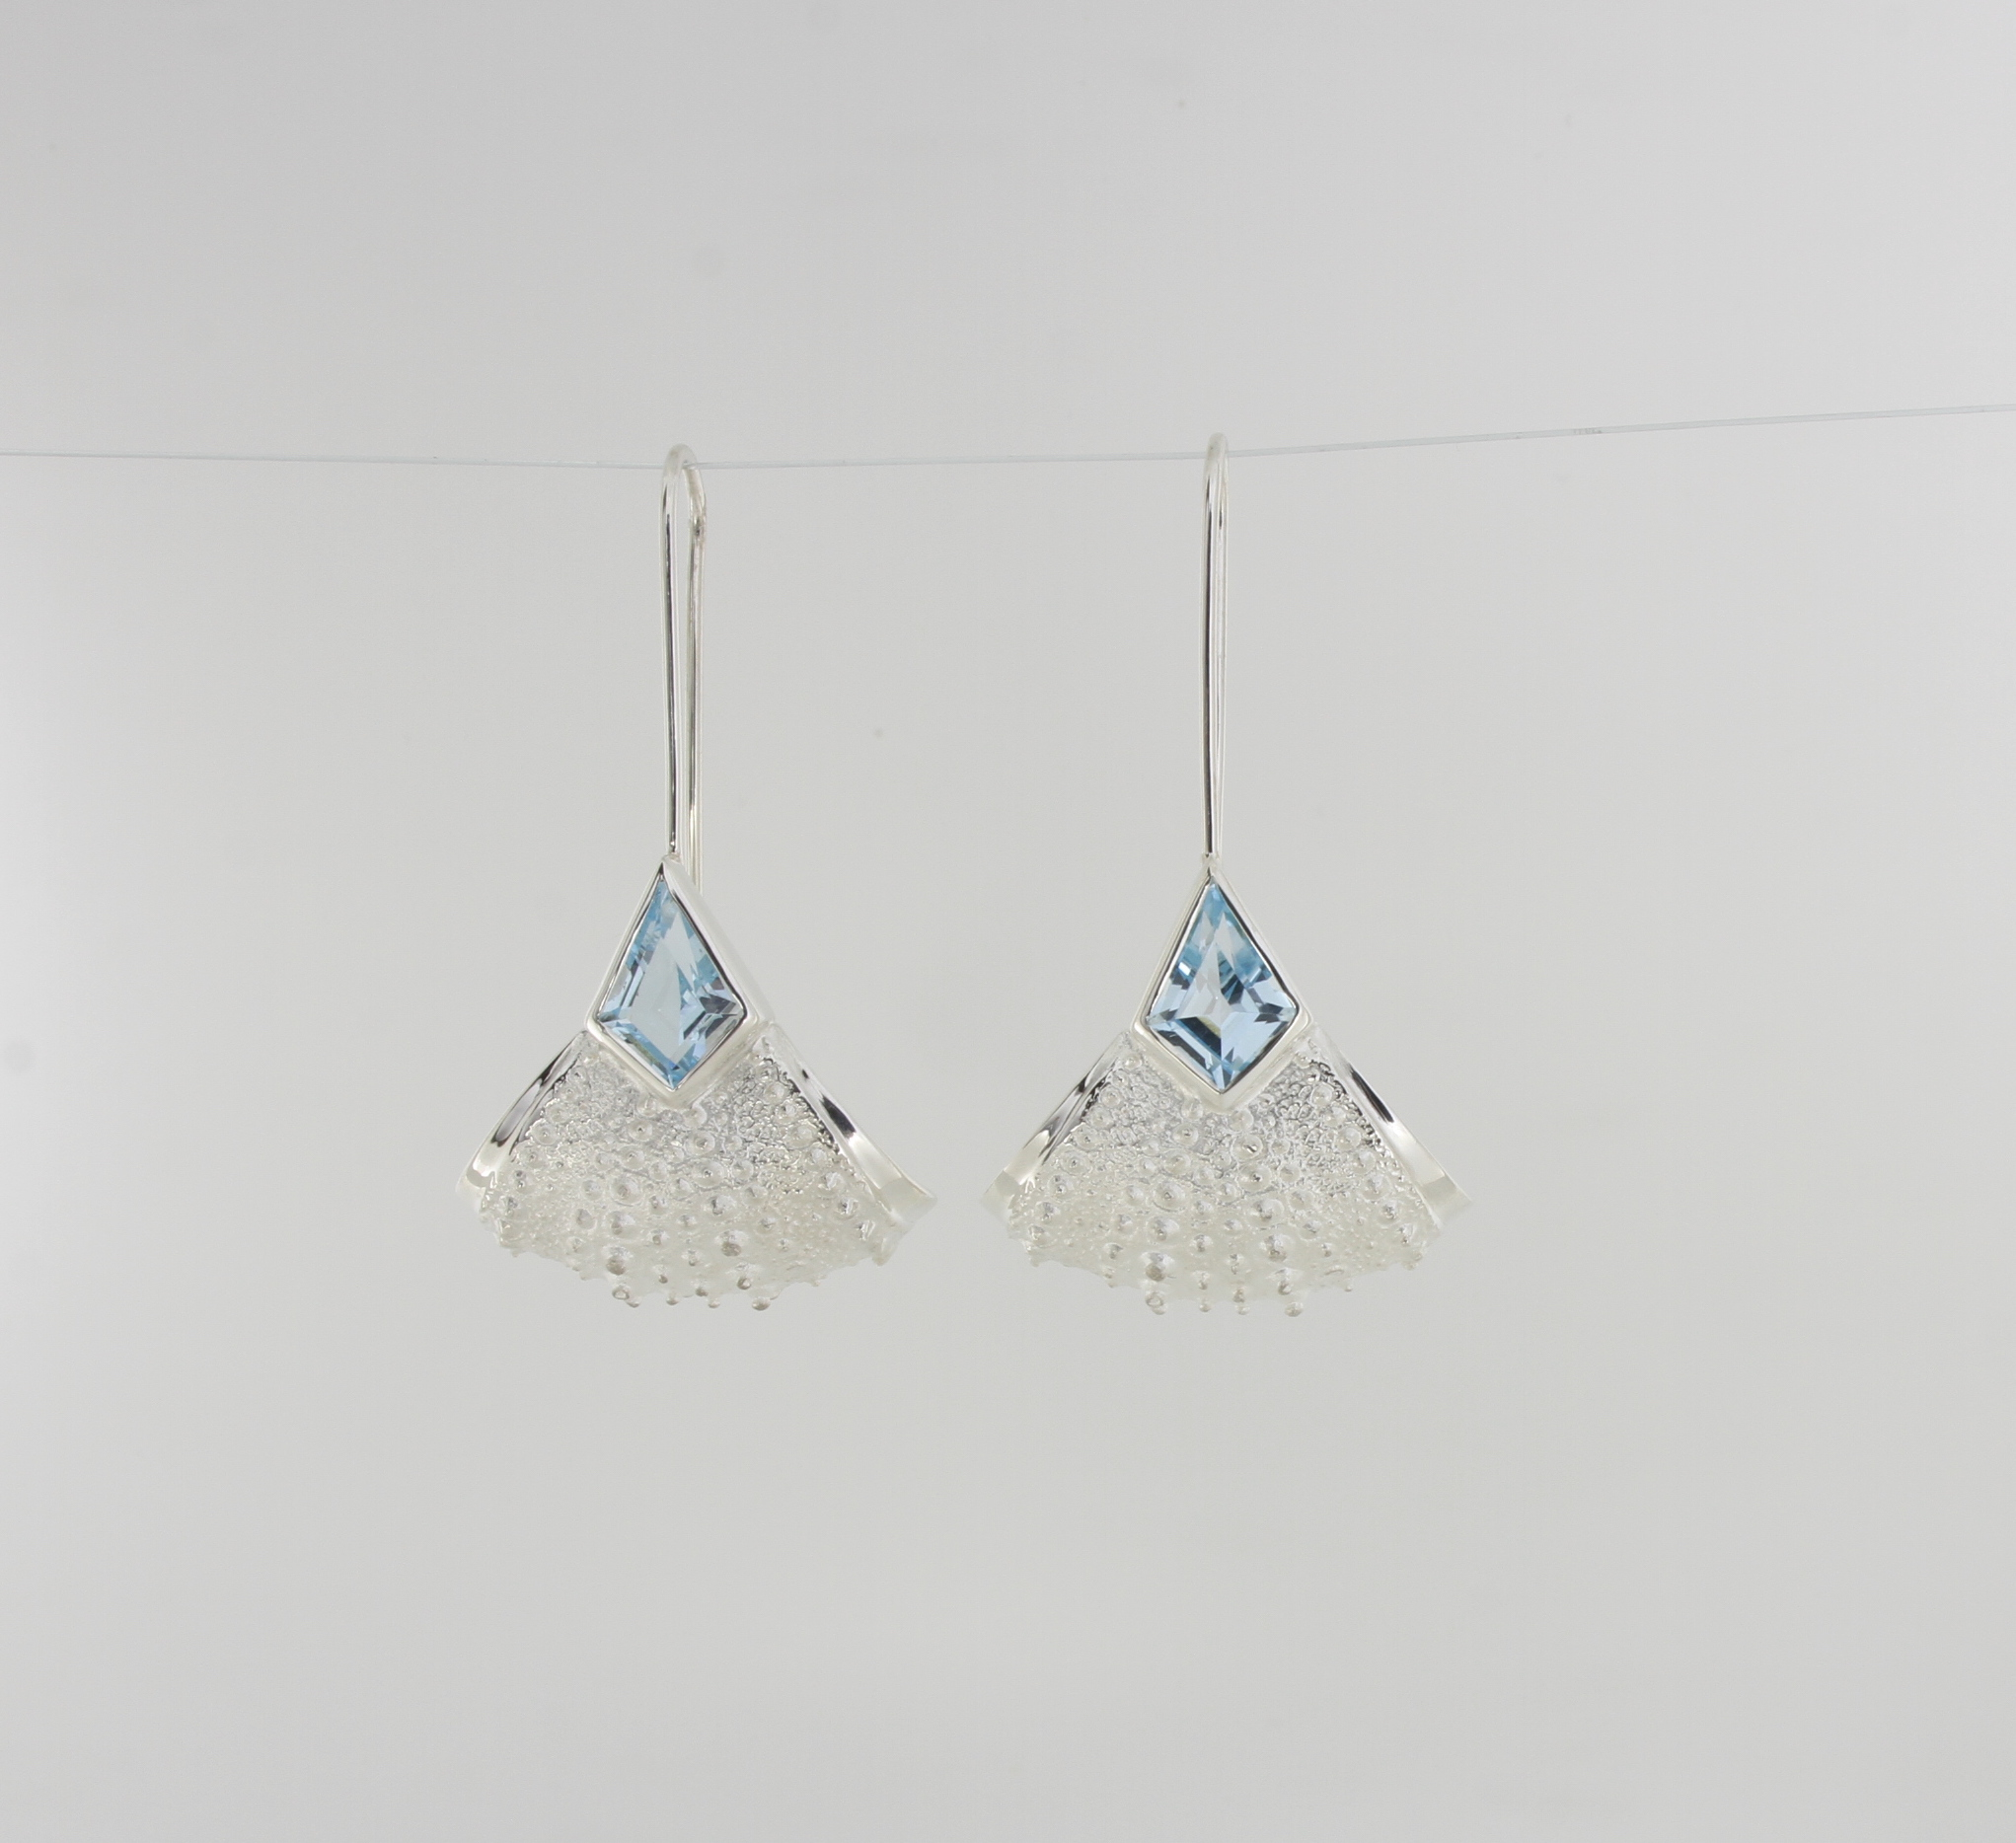 Payet urchin earrings